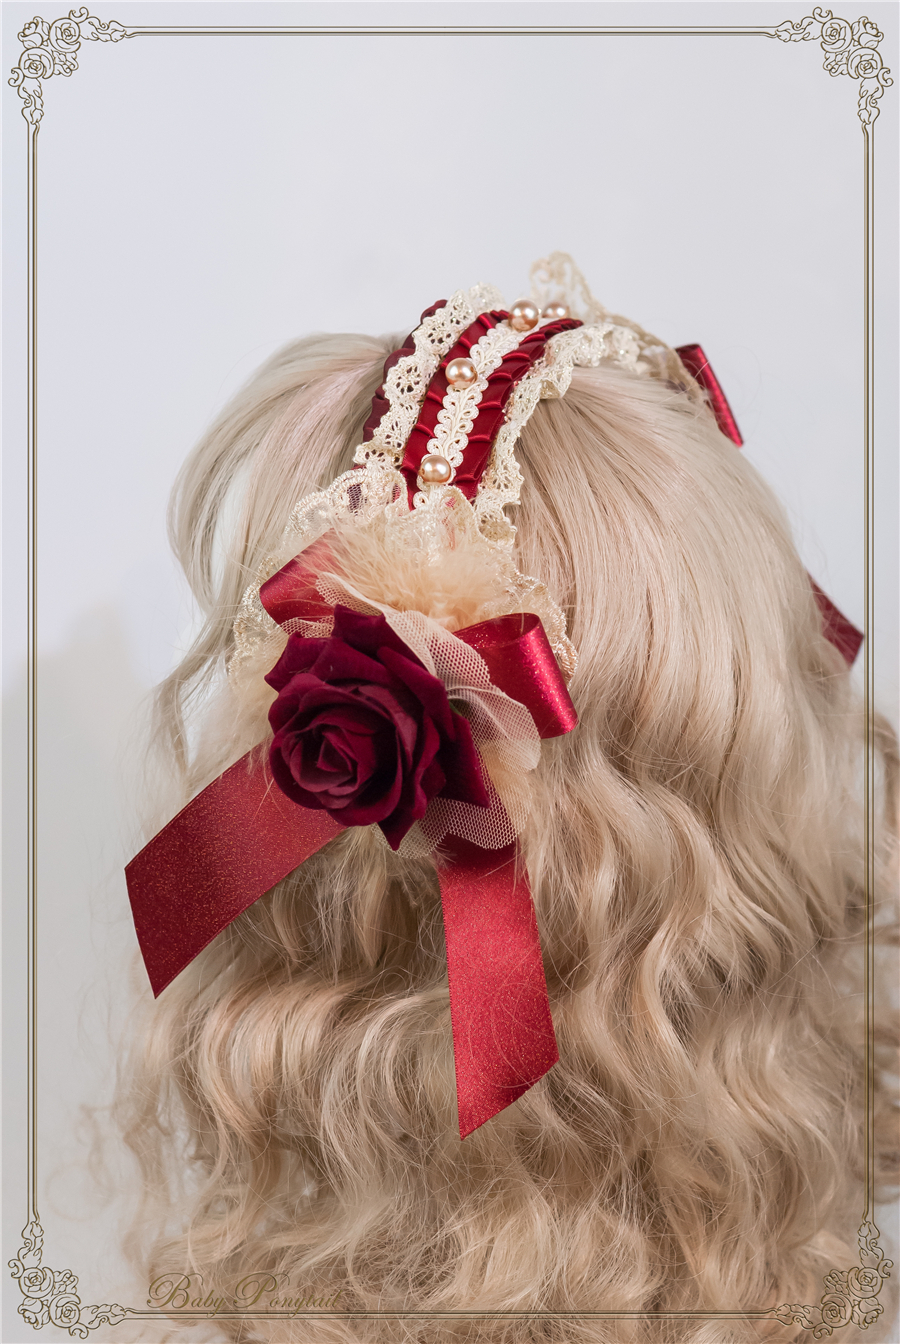 Baby Ponytail_Stock photo_Circus Princess_Rose Head Dress Red_03.jpg